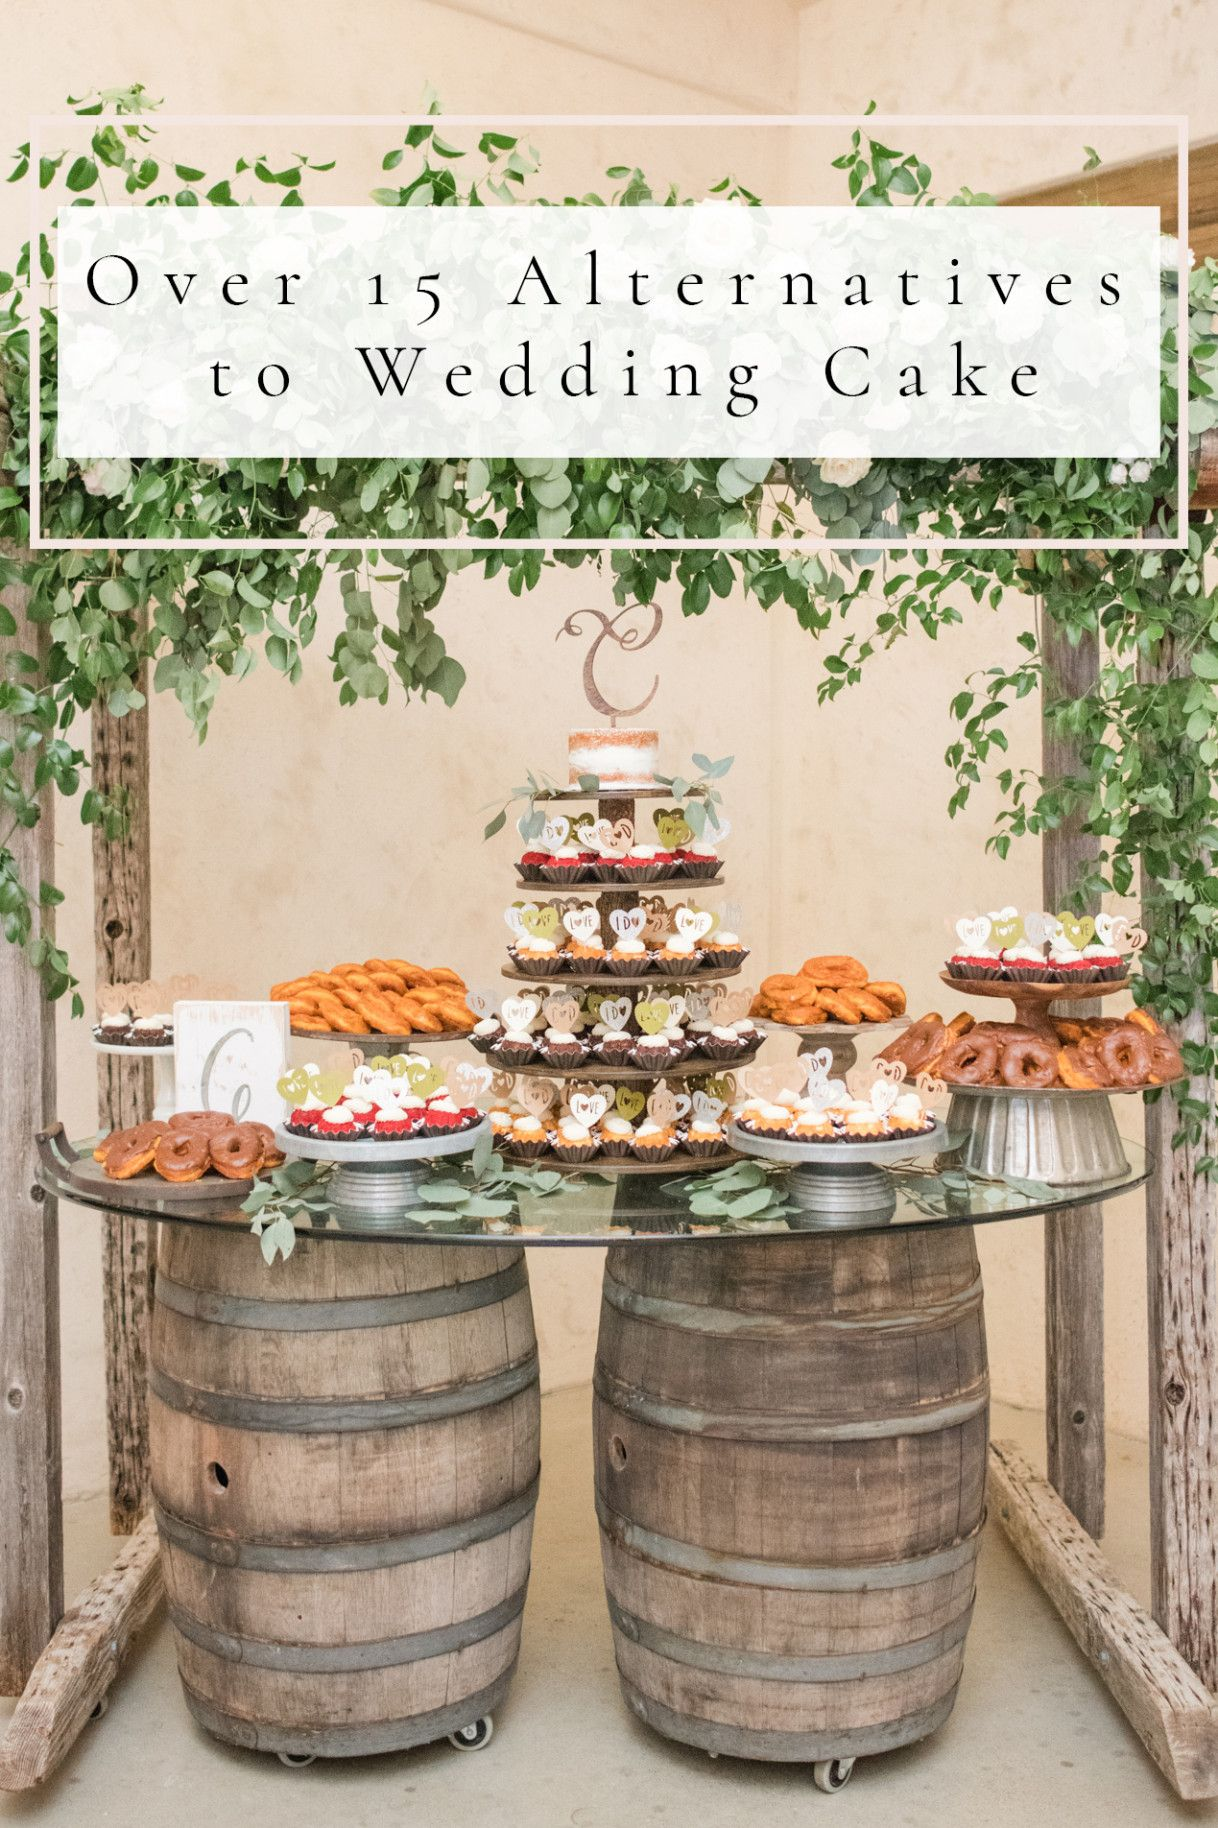 The 12 Secrets You Will Never Know About Cheap Wedding Cake Alternatives In 2020 Wedding Cake Alternatives Cheap Wedding Cakes Wedding Desserts